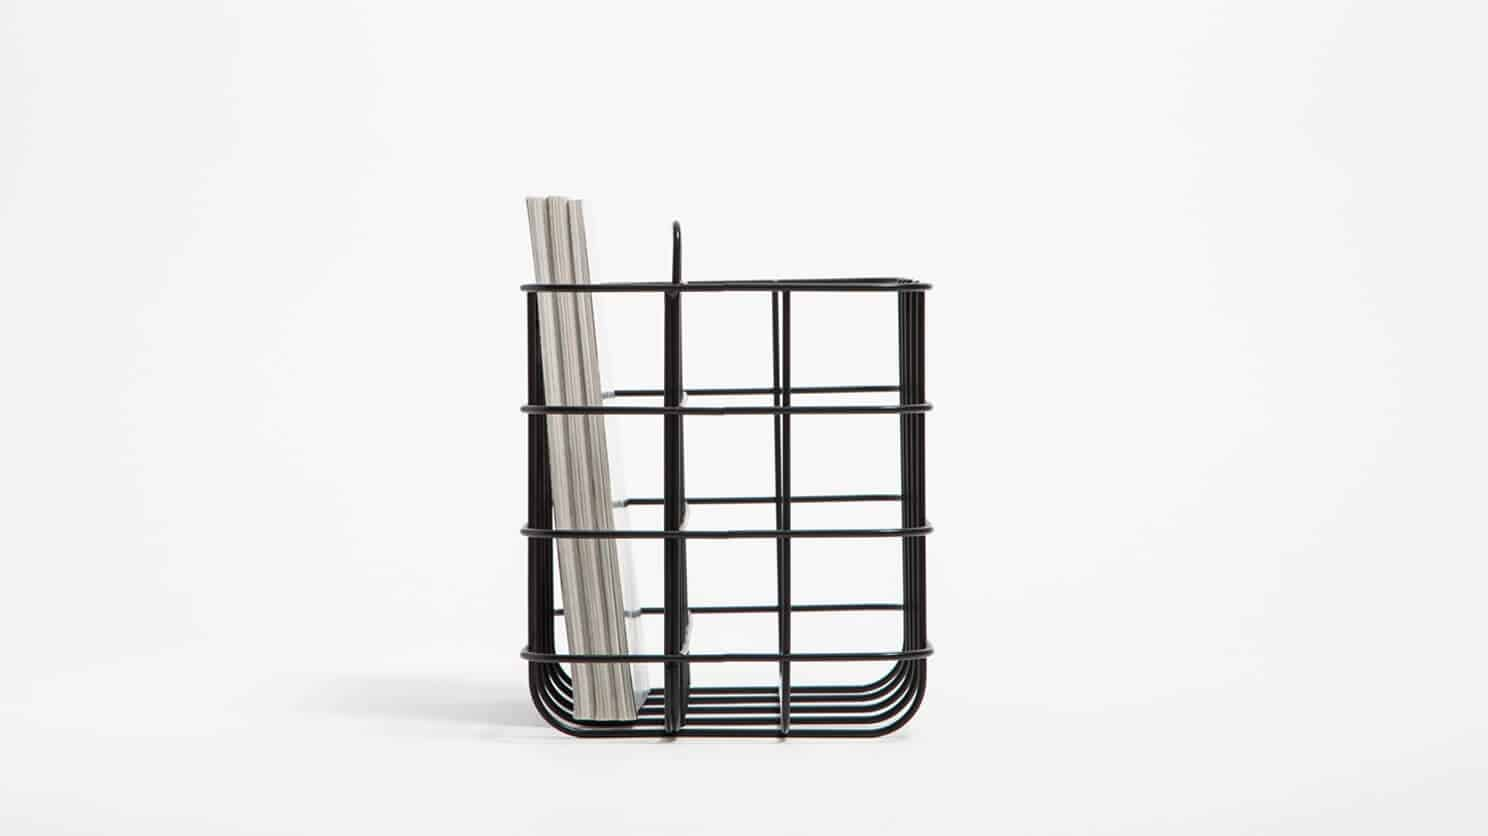 3230 615 1 2 organization station magazine rack black detail